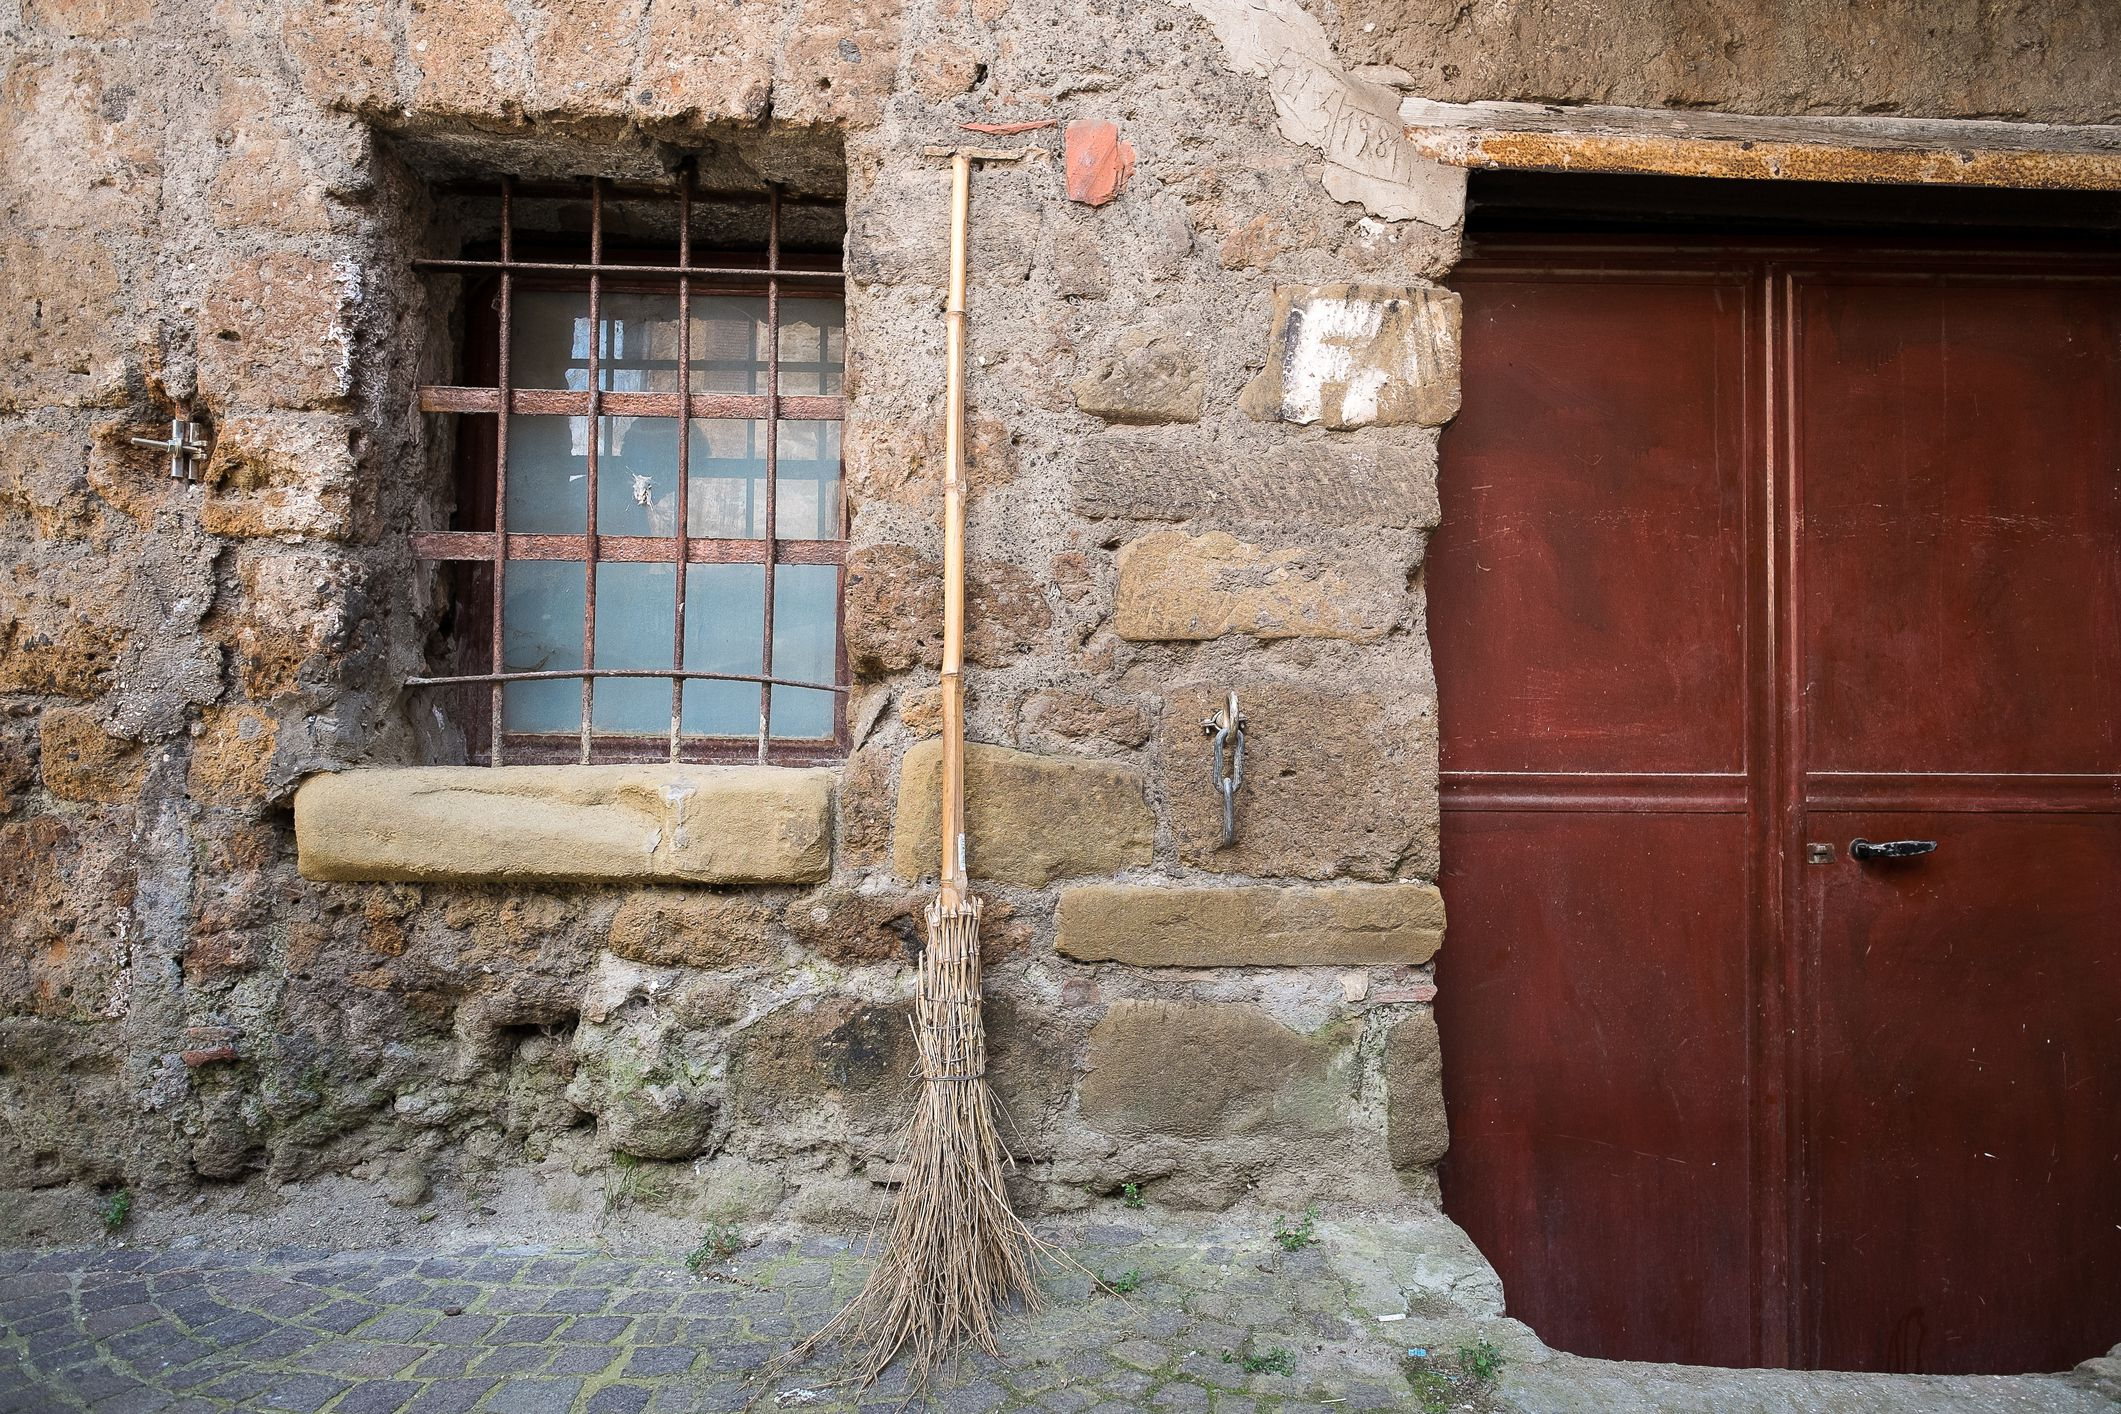 A straw broom rests against an old stone wall